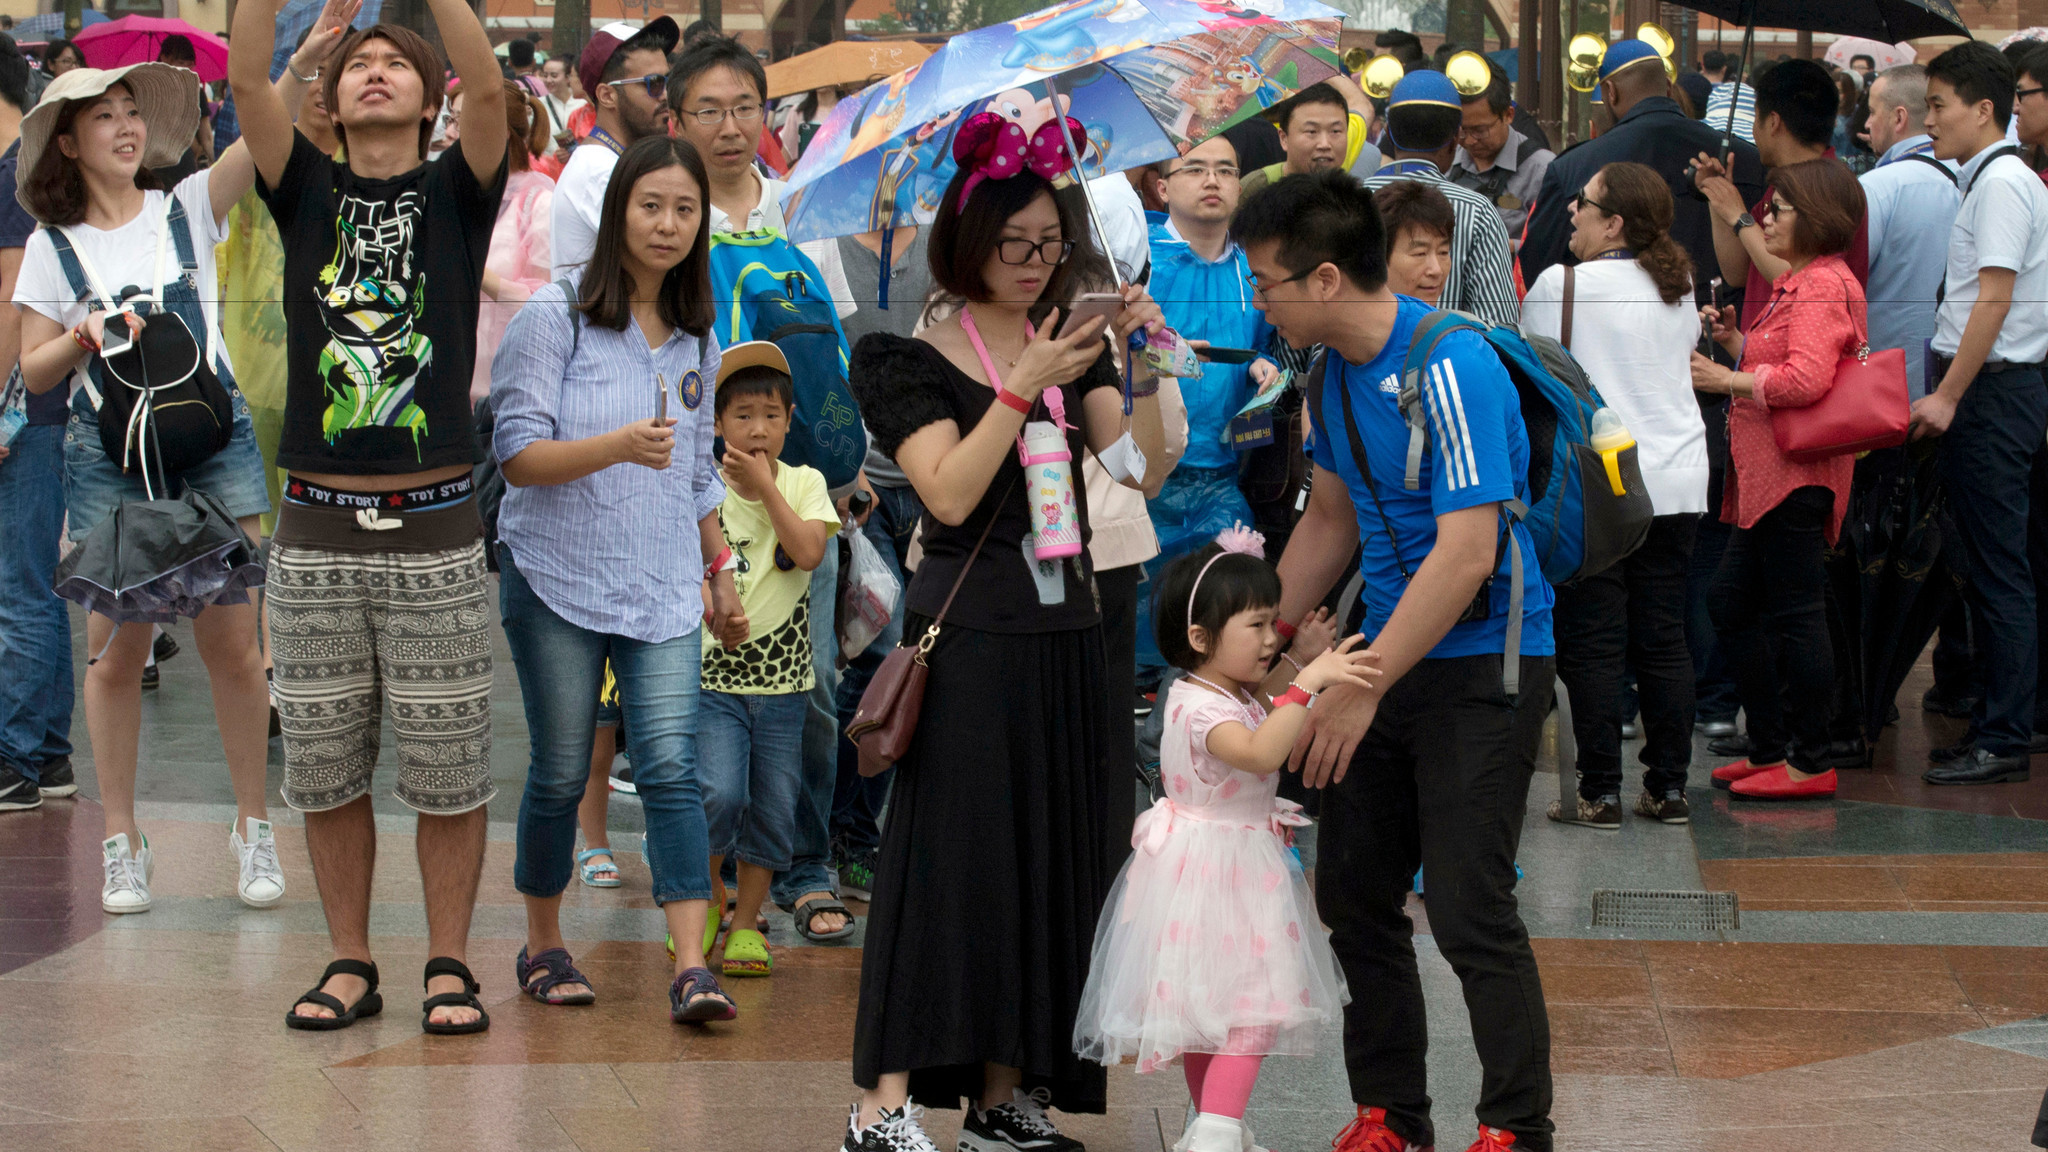 A child asks to be carried during a crowded opening day at the Disney Resort in Shanghai. (AP Photo/Ng Han Guan)